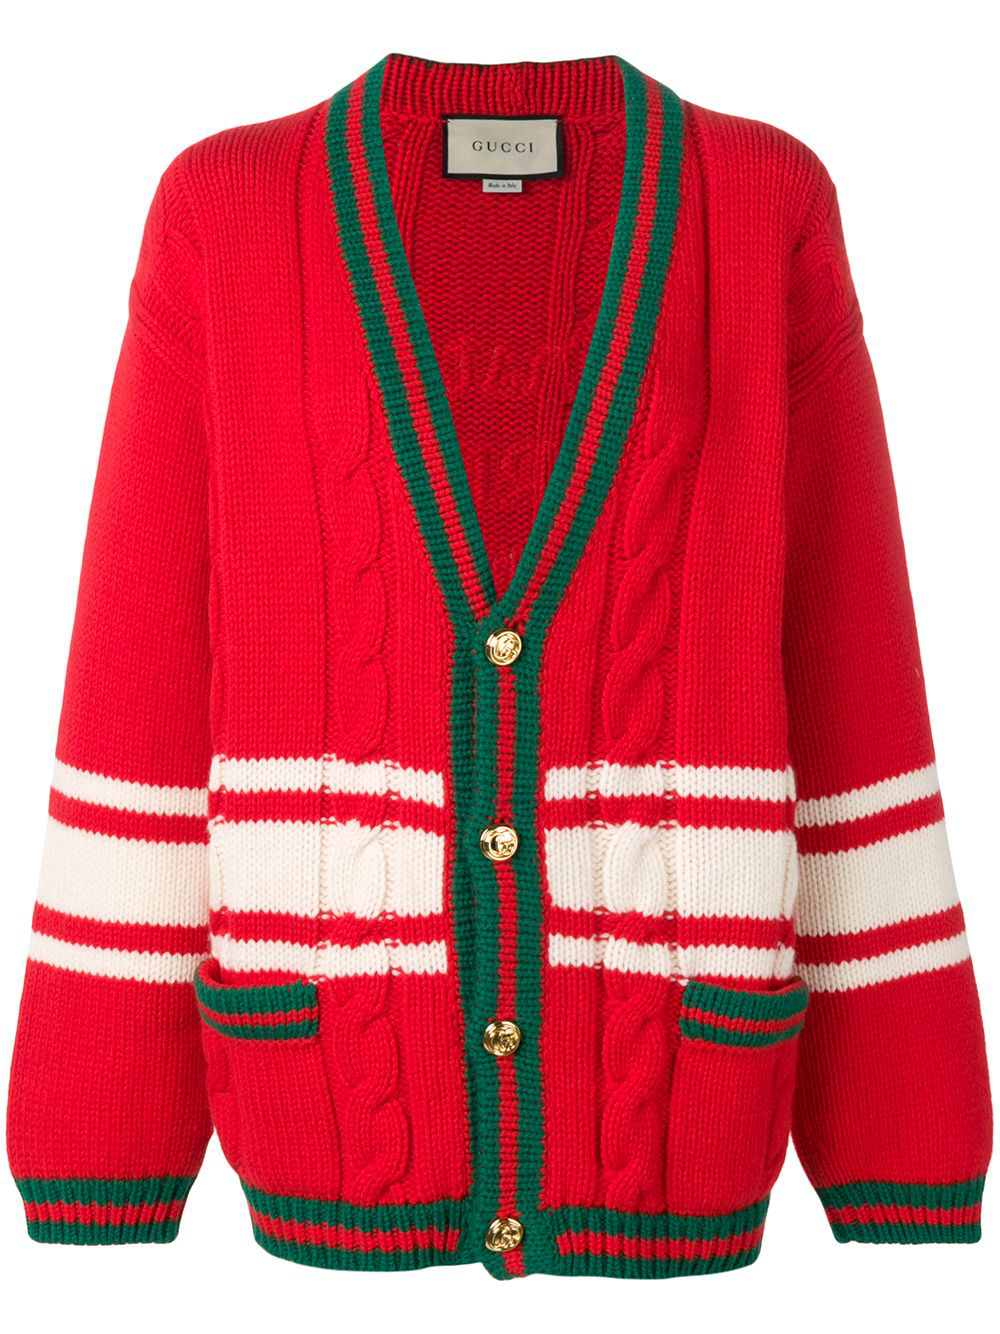 3c36f9f861b Gucci Chateau Marmont Embroidered Striped Cable-Knit Wool Cardigan In Red